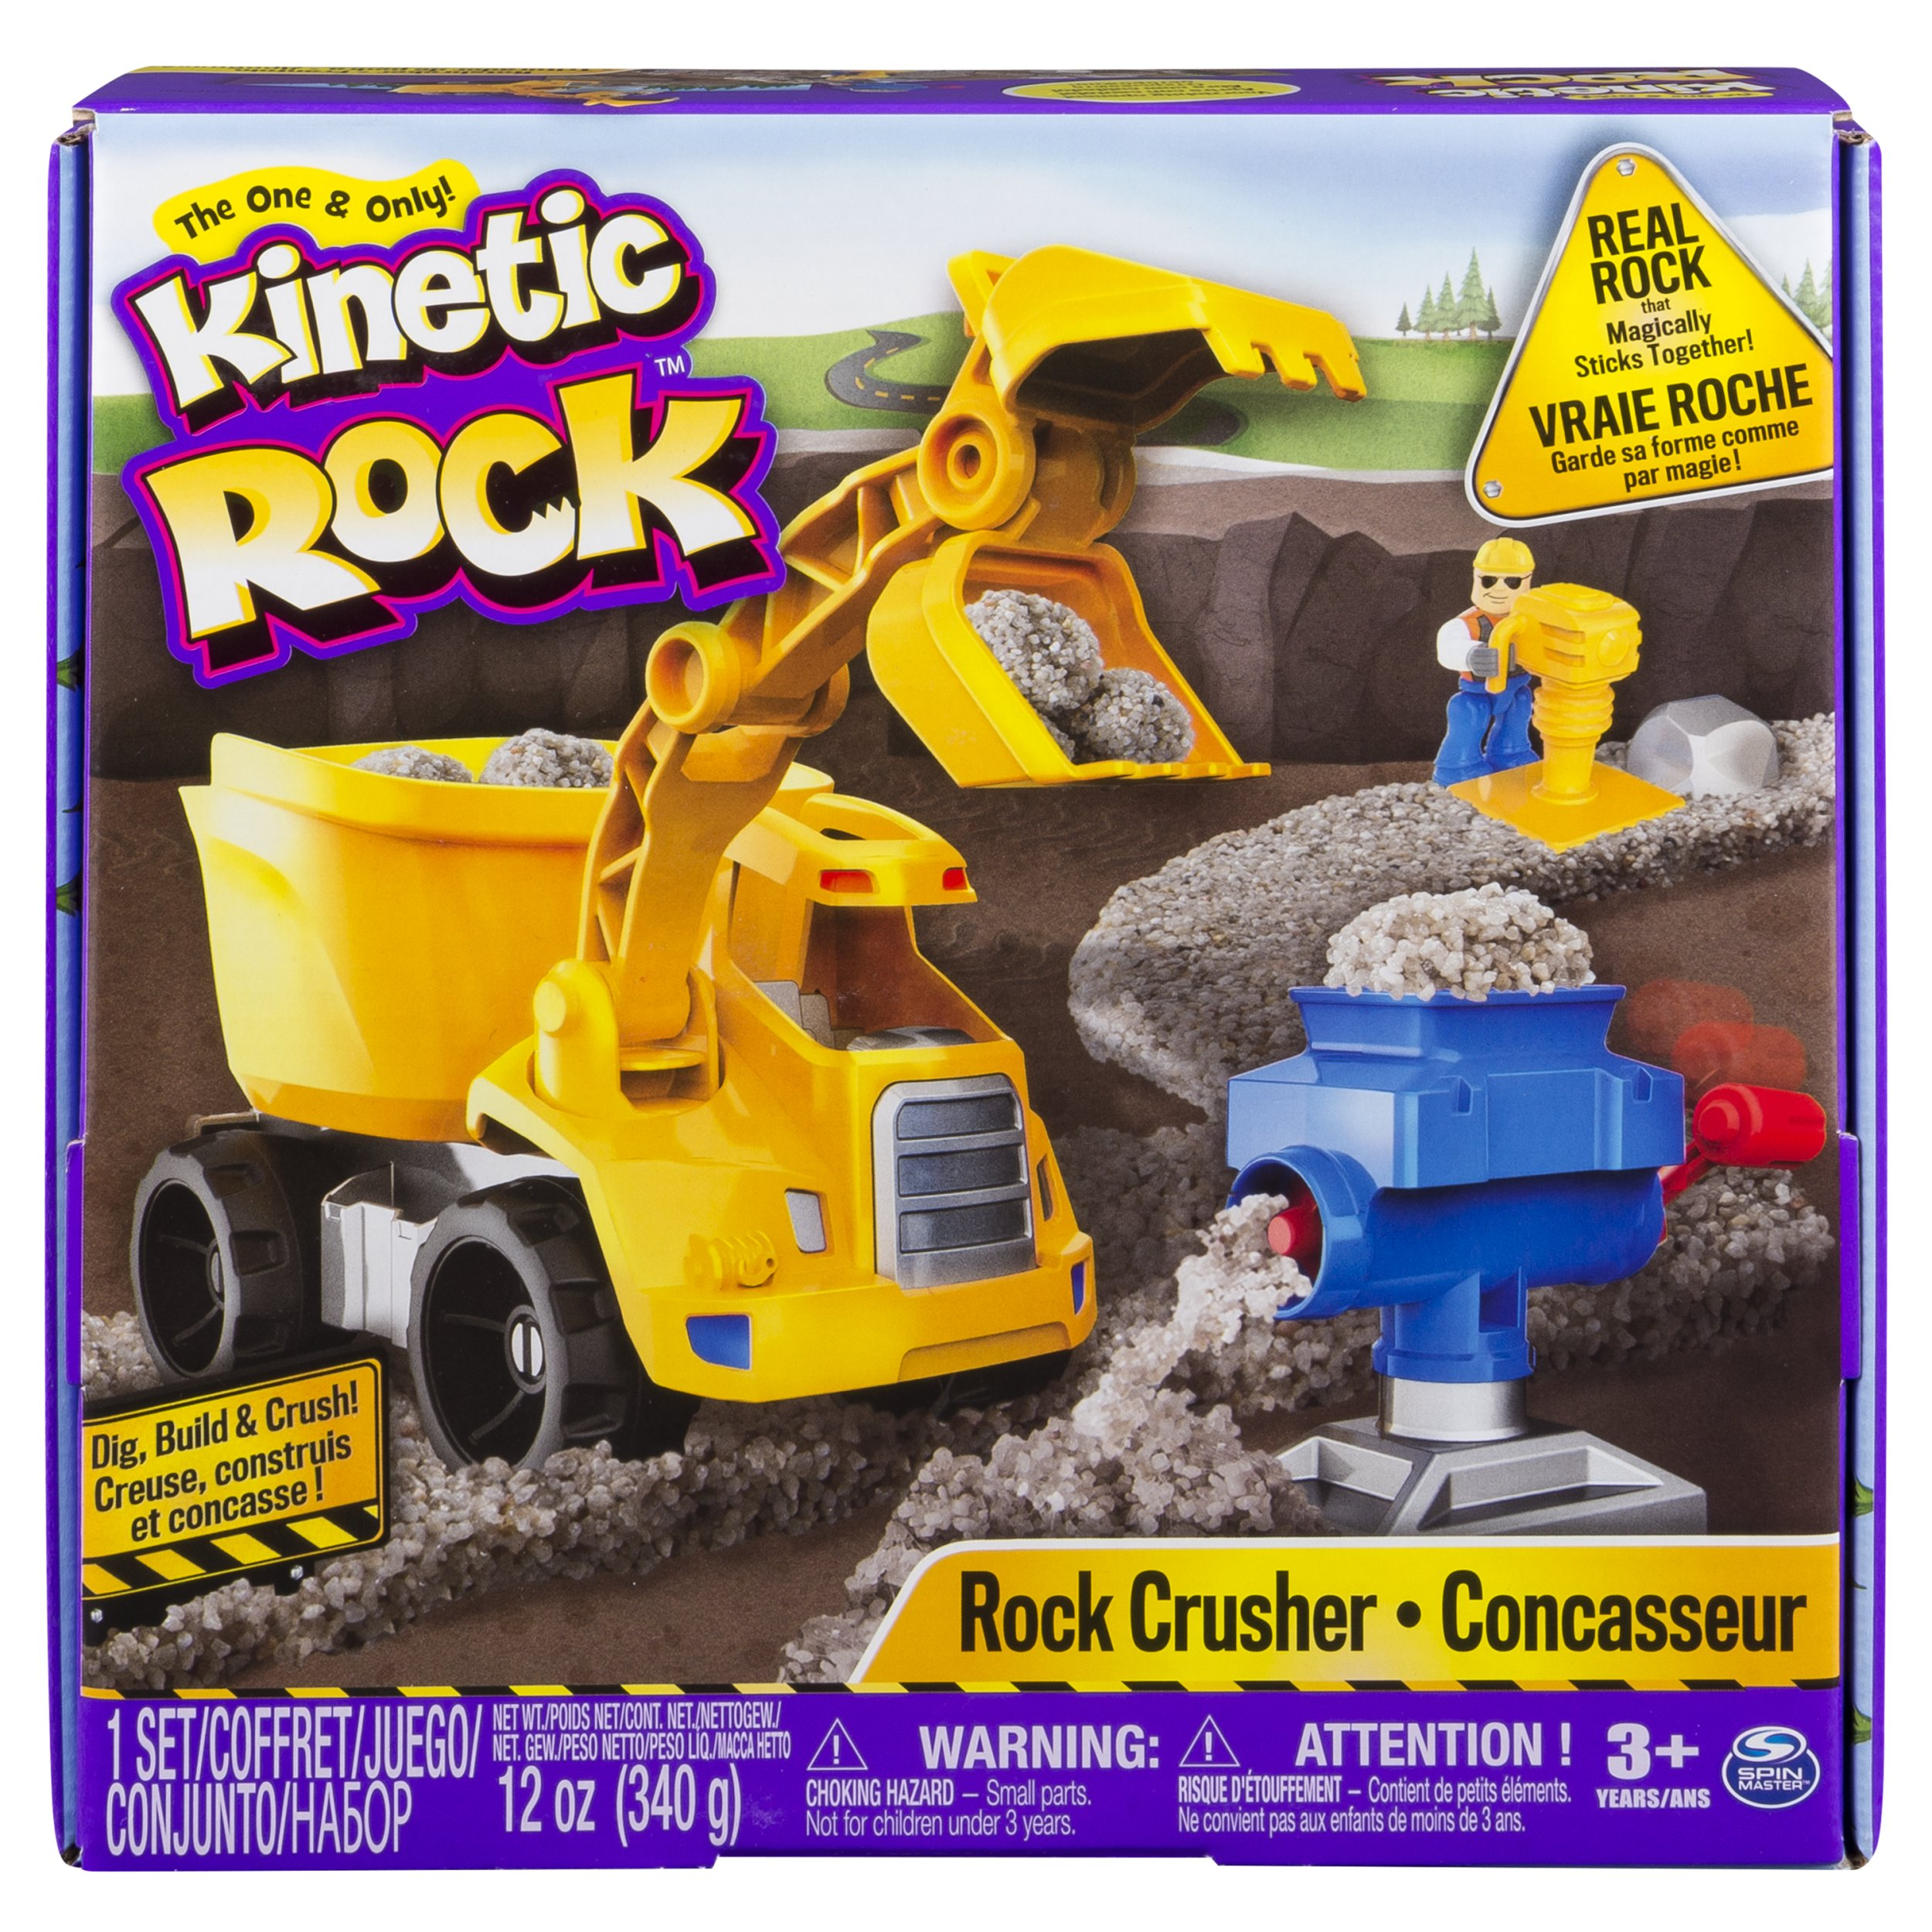 Kinetic Rock - Rock Crusher Toy Kit with Construction Tools, for Ages 3 and Up by Kinetic Rock